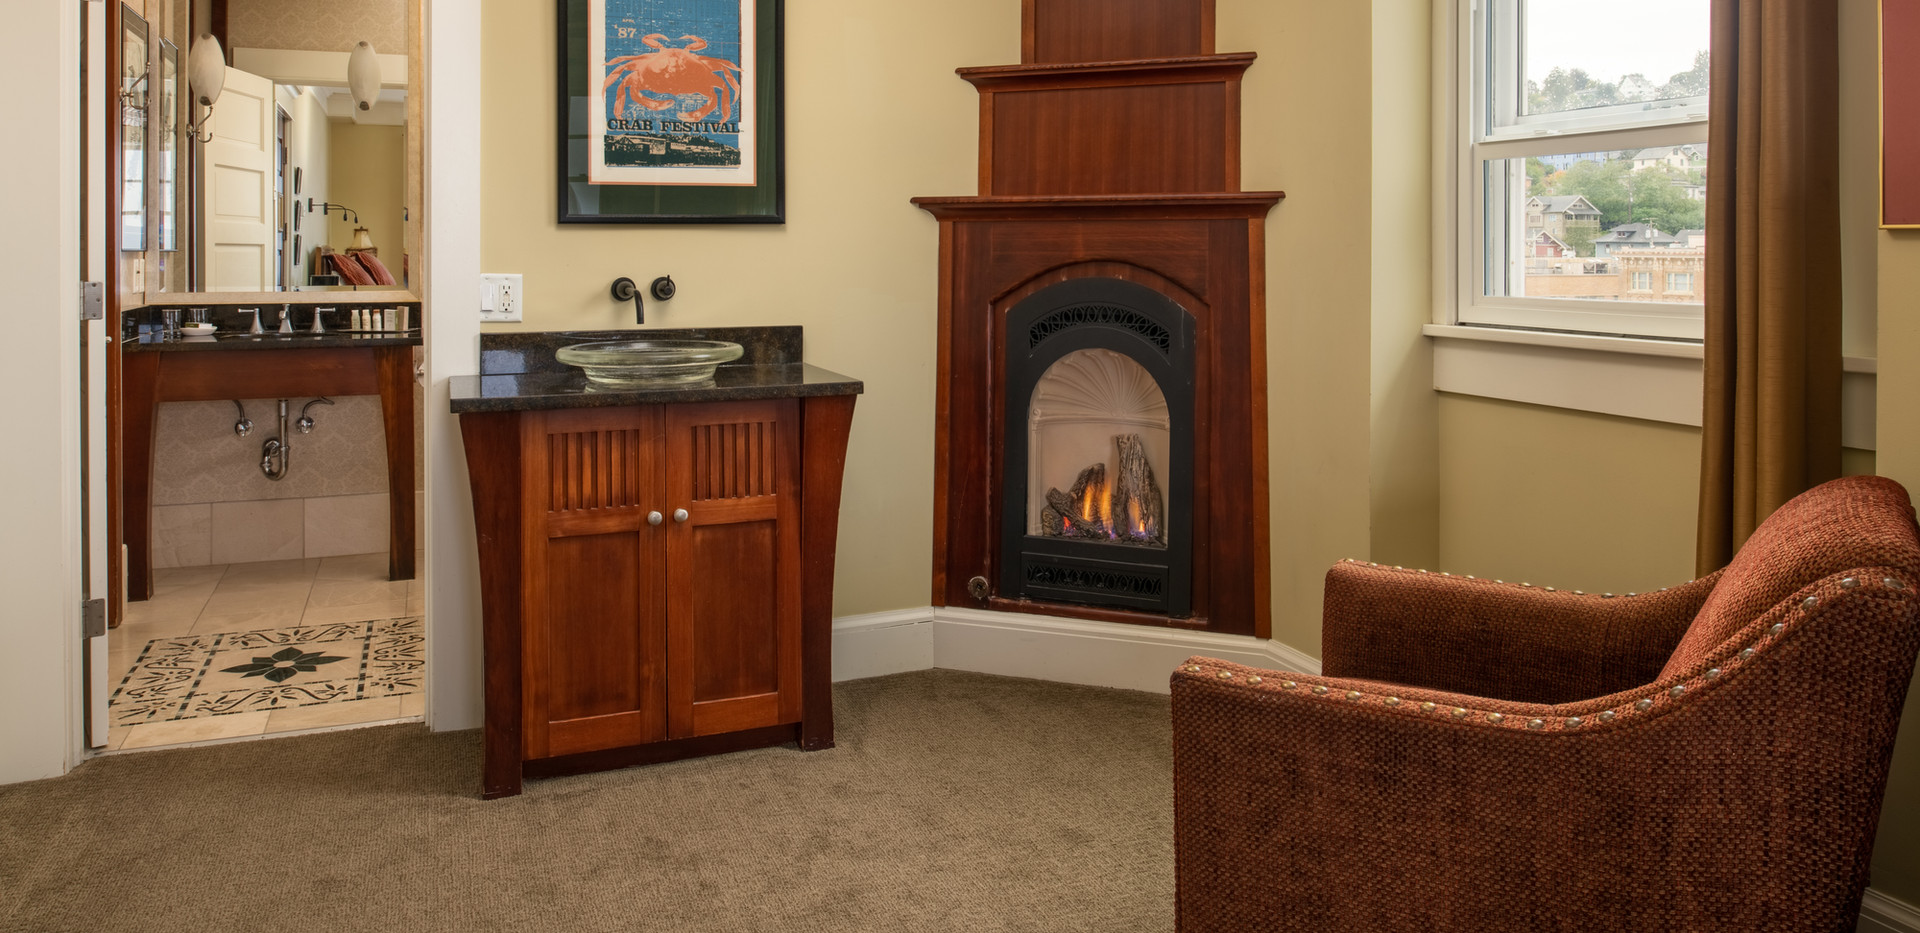 Junior Club Suite with Fireplace